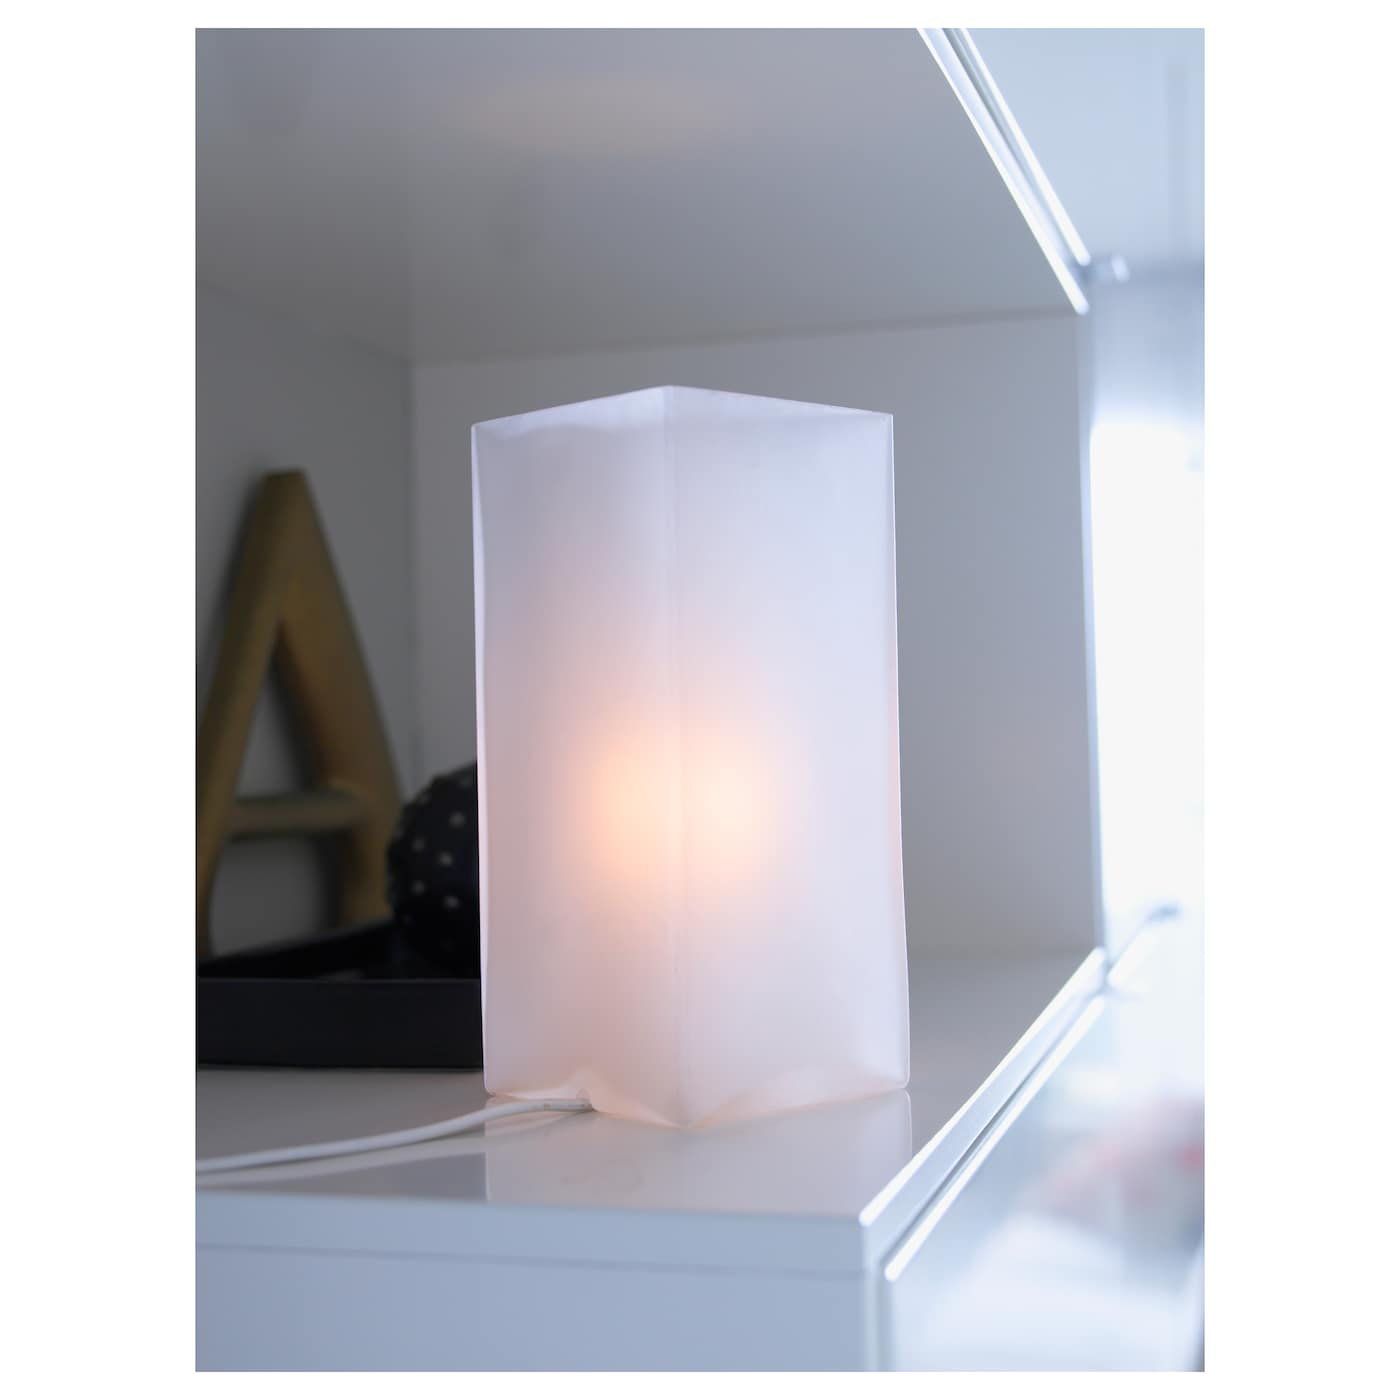 gr n table lamp frosted glass white ikea. Black Bedroom Furniture Sets. Home Design Ideas